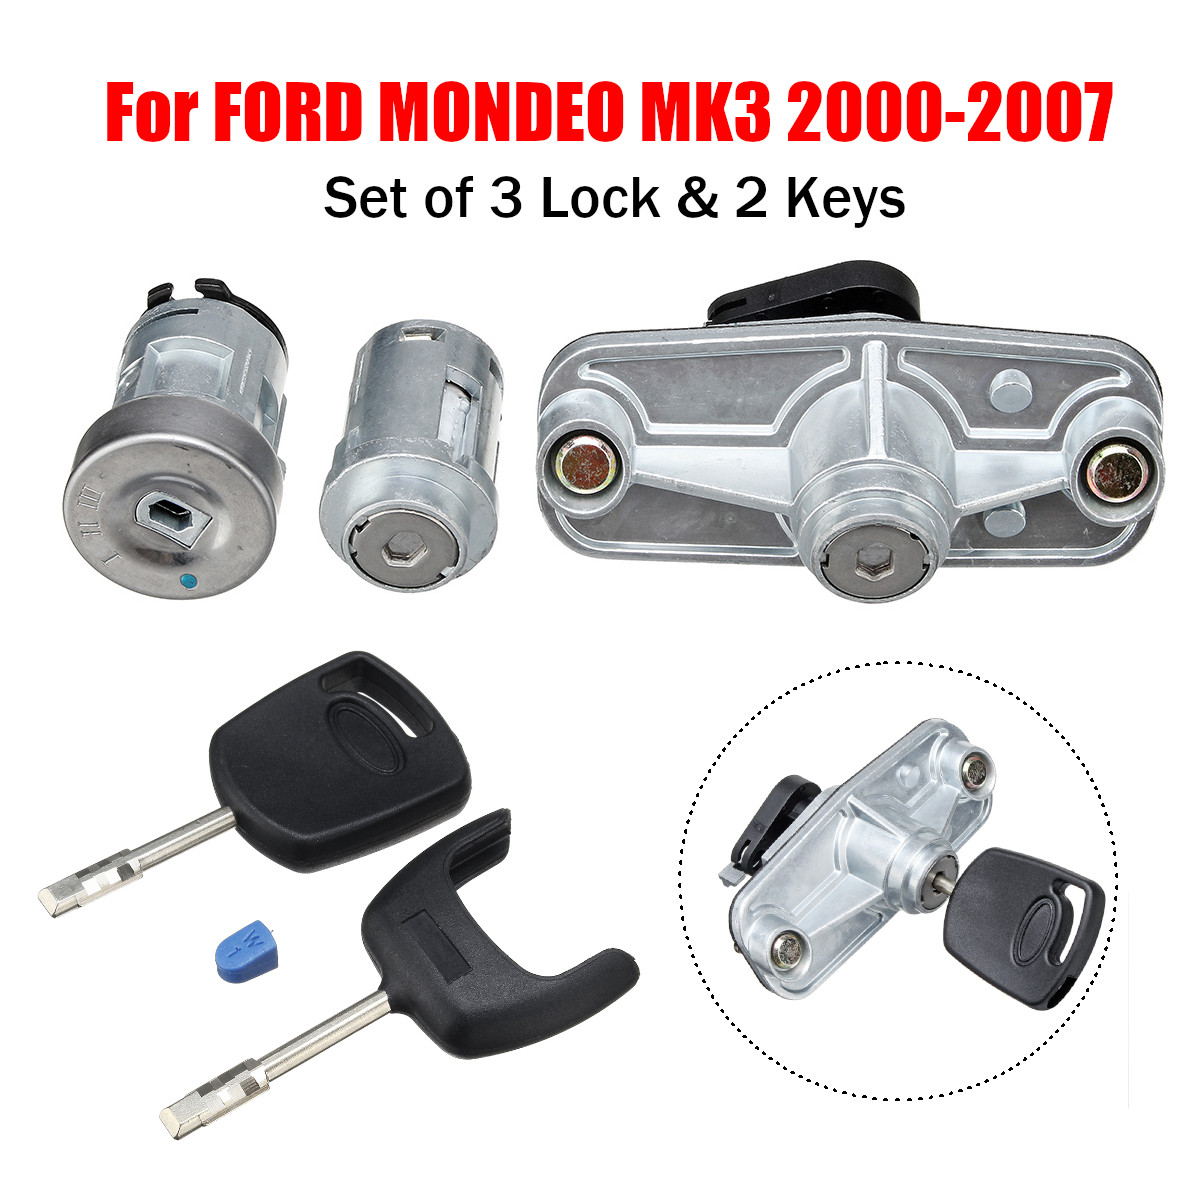 Hot New 1Set Car Door Lock Set Ignition Petrol Cap Cover Rear Trunk Boot Lock Left For FORD For MONDEO MK3 2000 - 2007